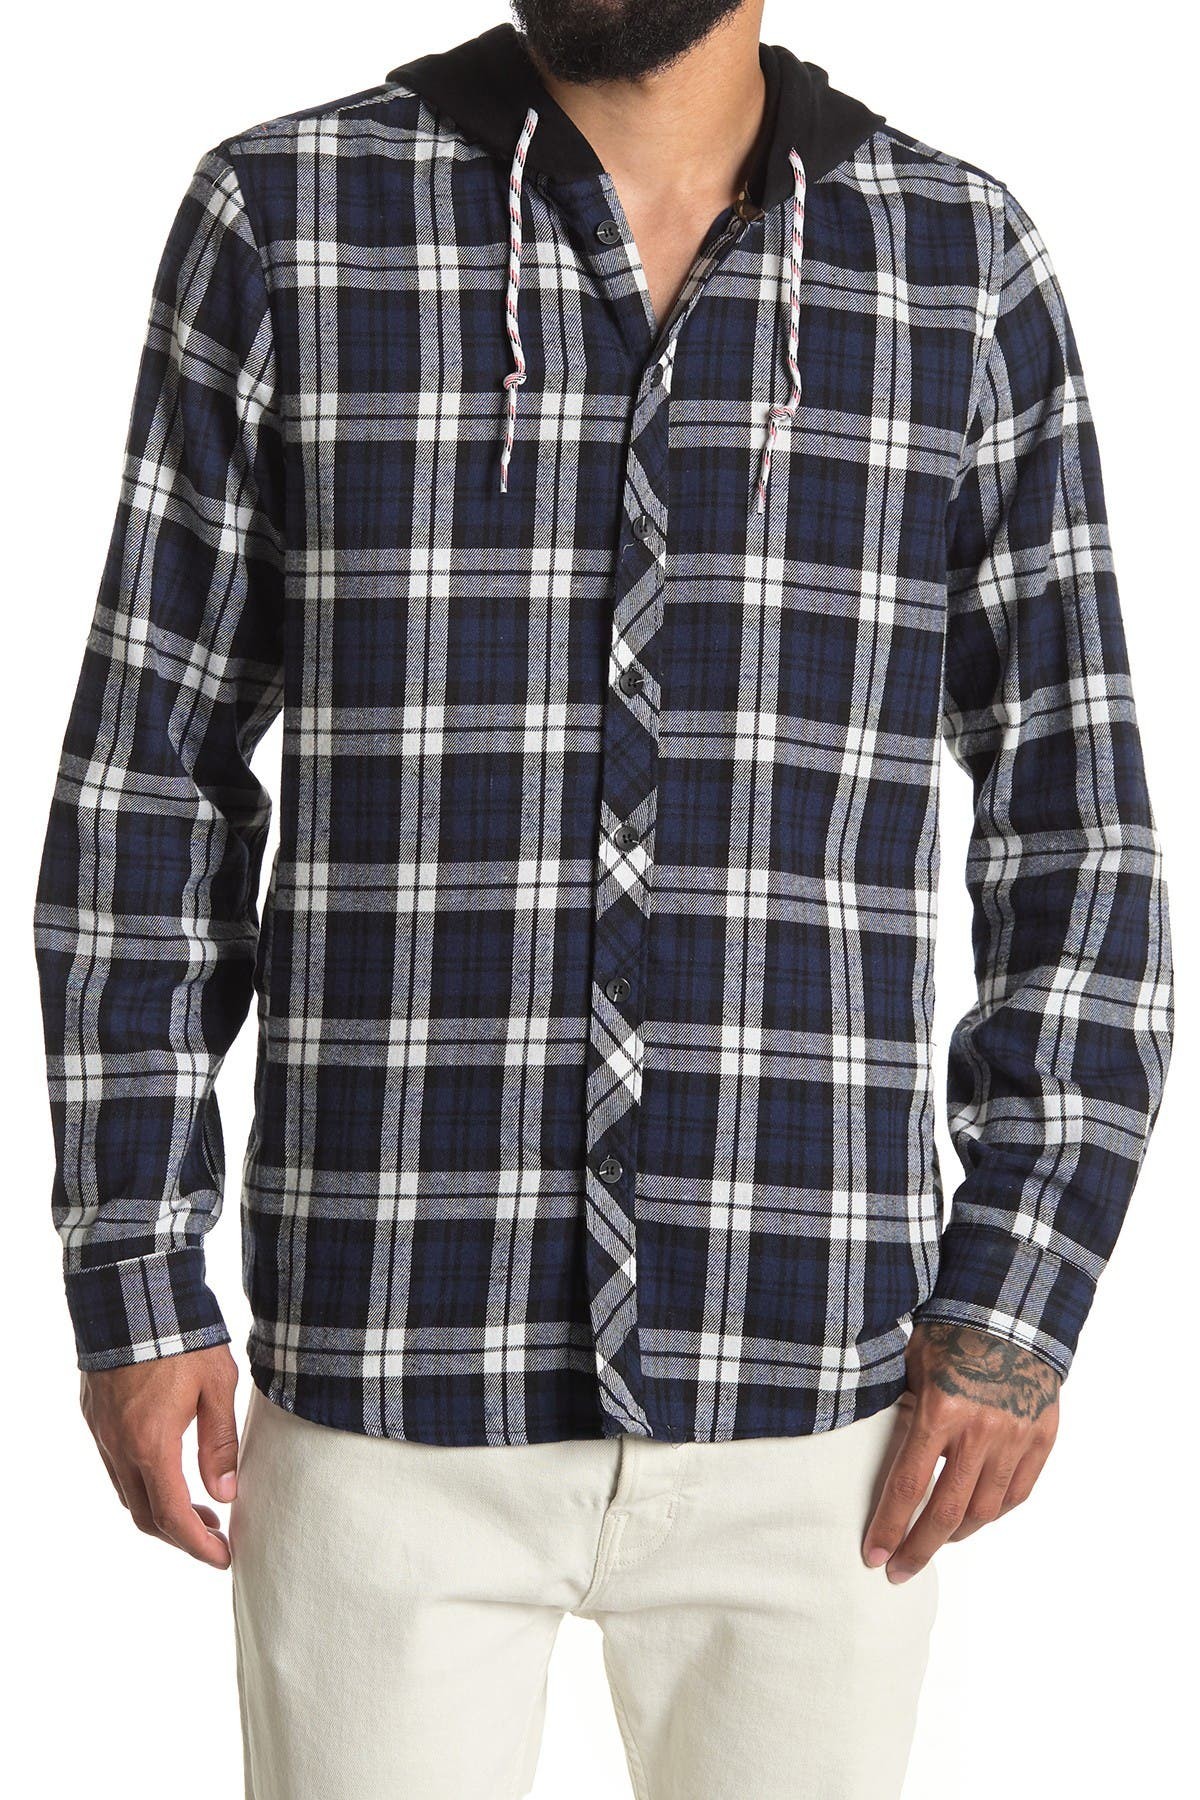 Image of Sovereign Code Hane Hooded Plaid Shirt